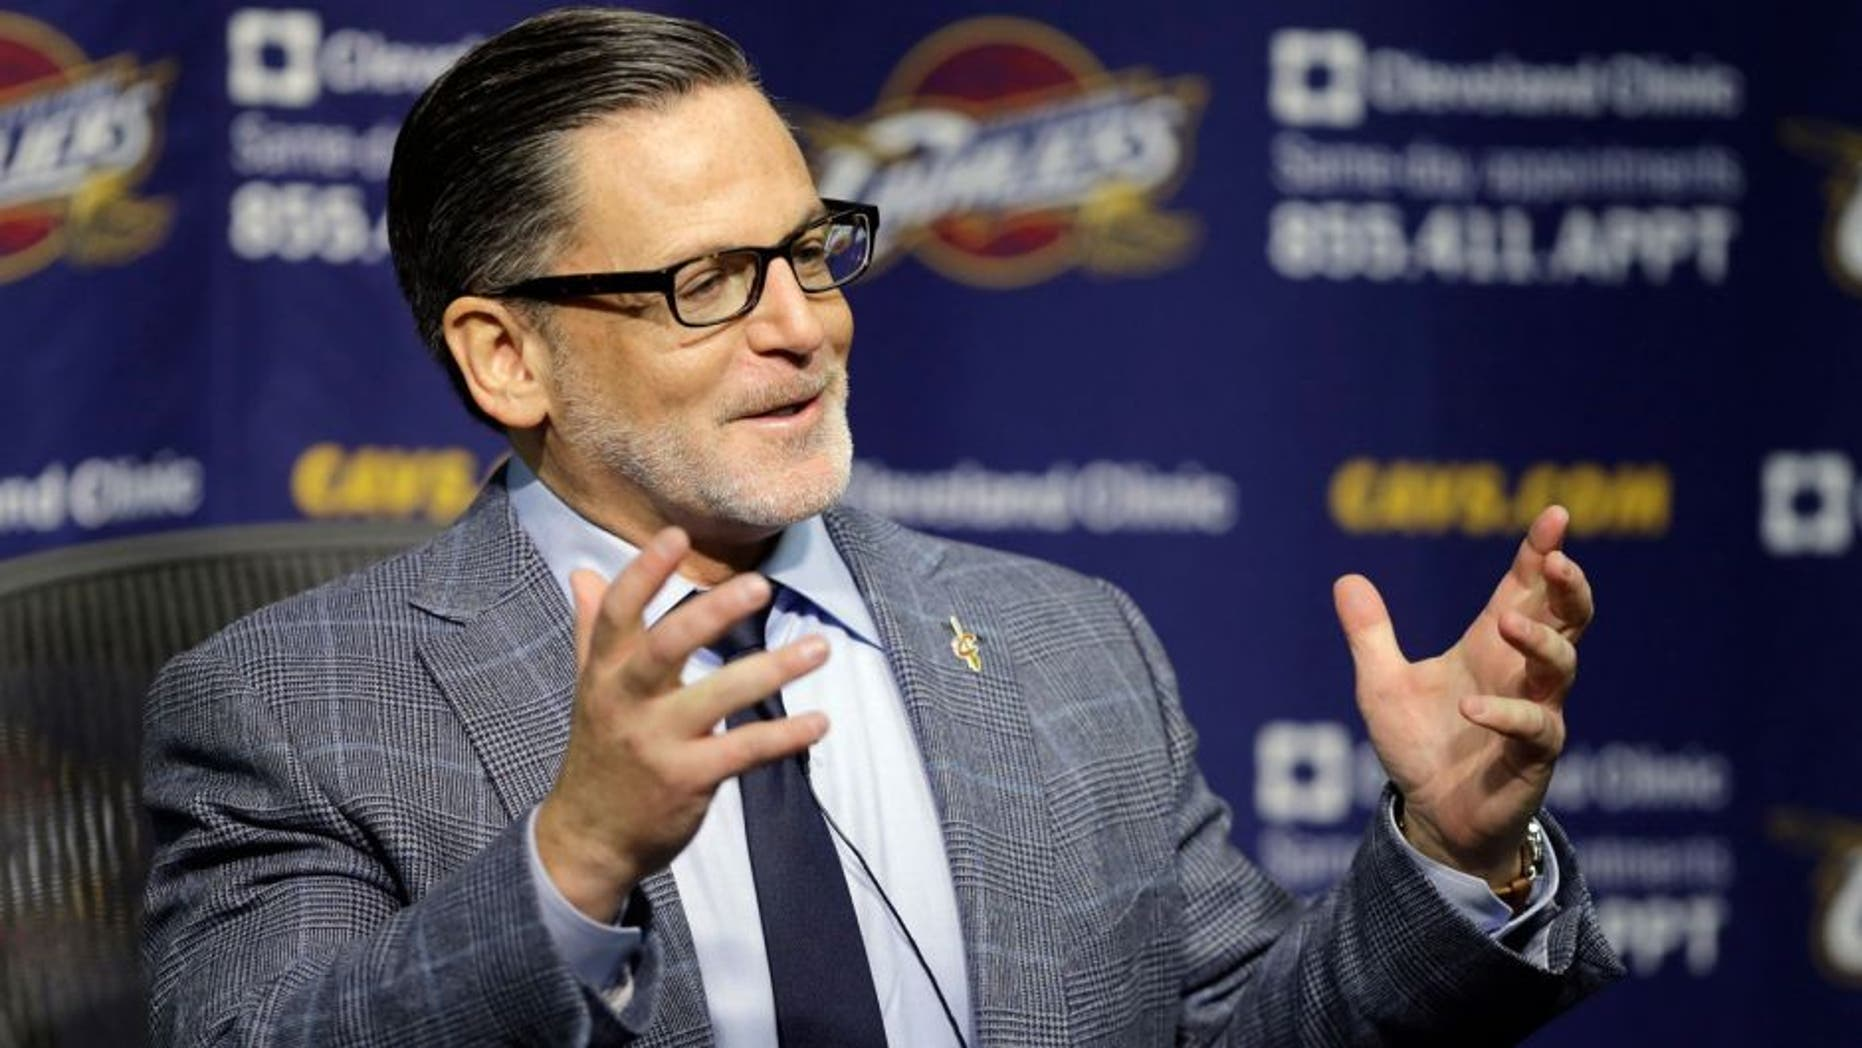 Cleveland Cavaliers owner Dan Gilbert answers questions during a news conference on the day before the NBA basketball team's opening game Wednesday, Oct. 29, 2014, in Cleveland. (AP Photo/Mark Duncan)